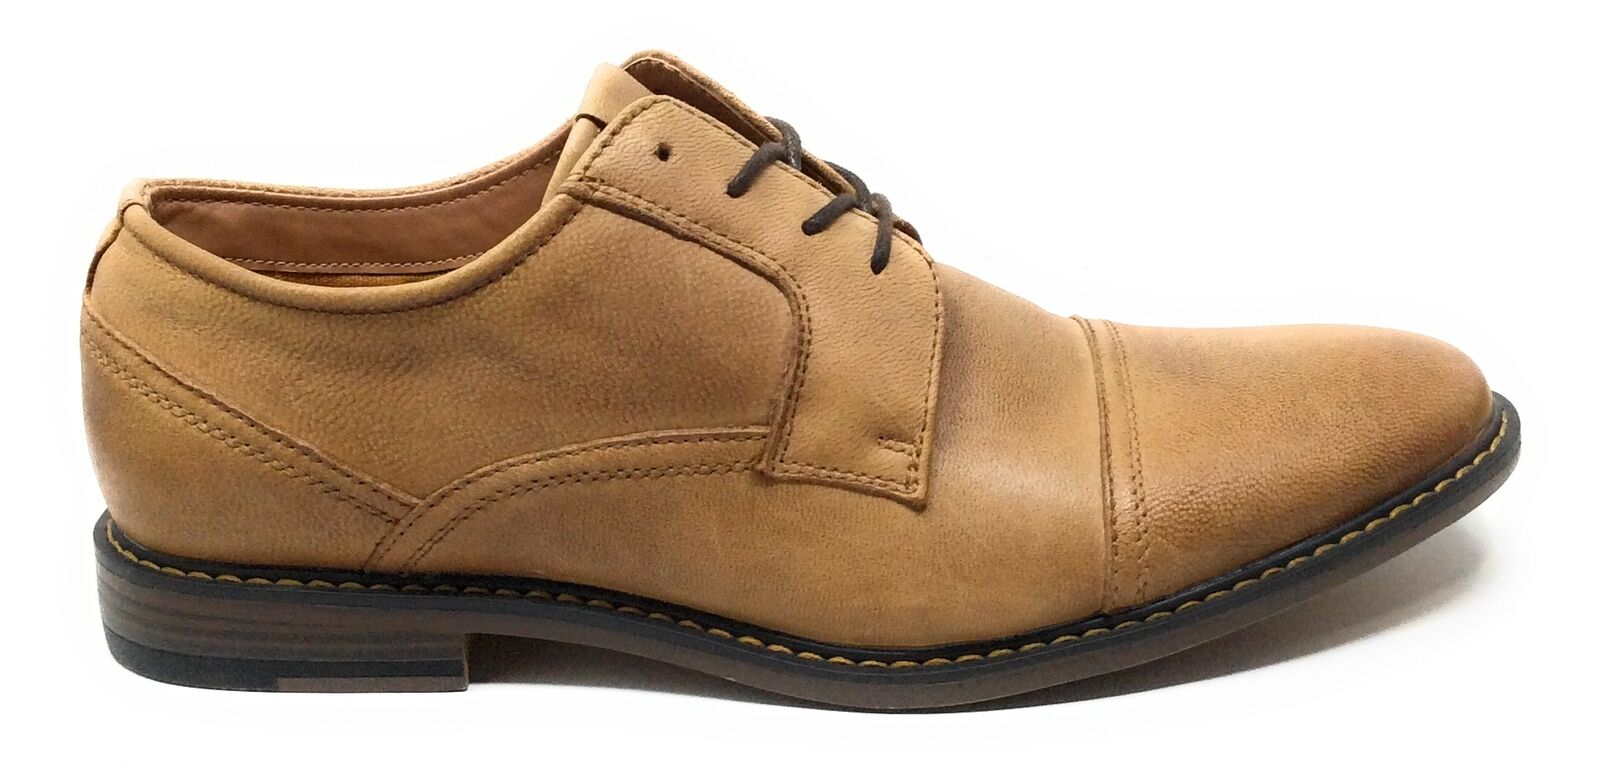 J75 By Jump Mens Paulson Lace Oxford Dress Shoes Tan Leather Size 9.5 M US